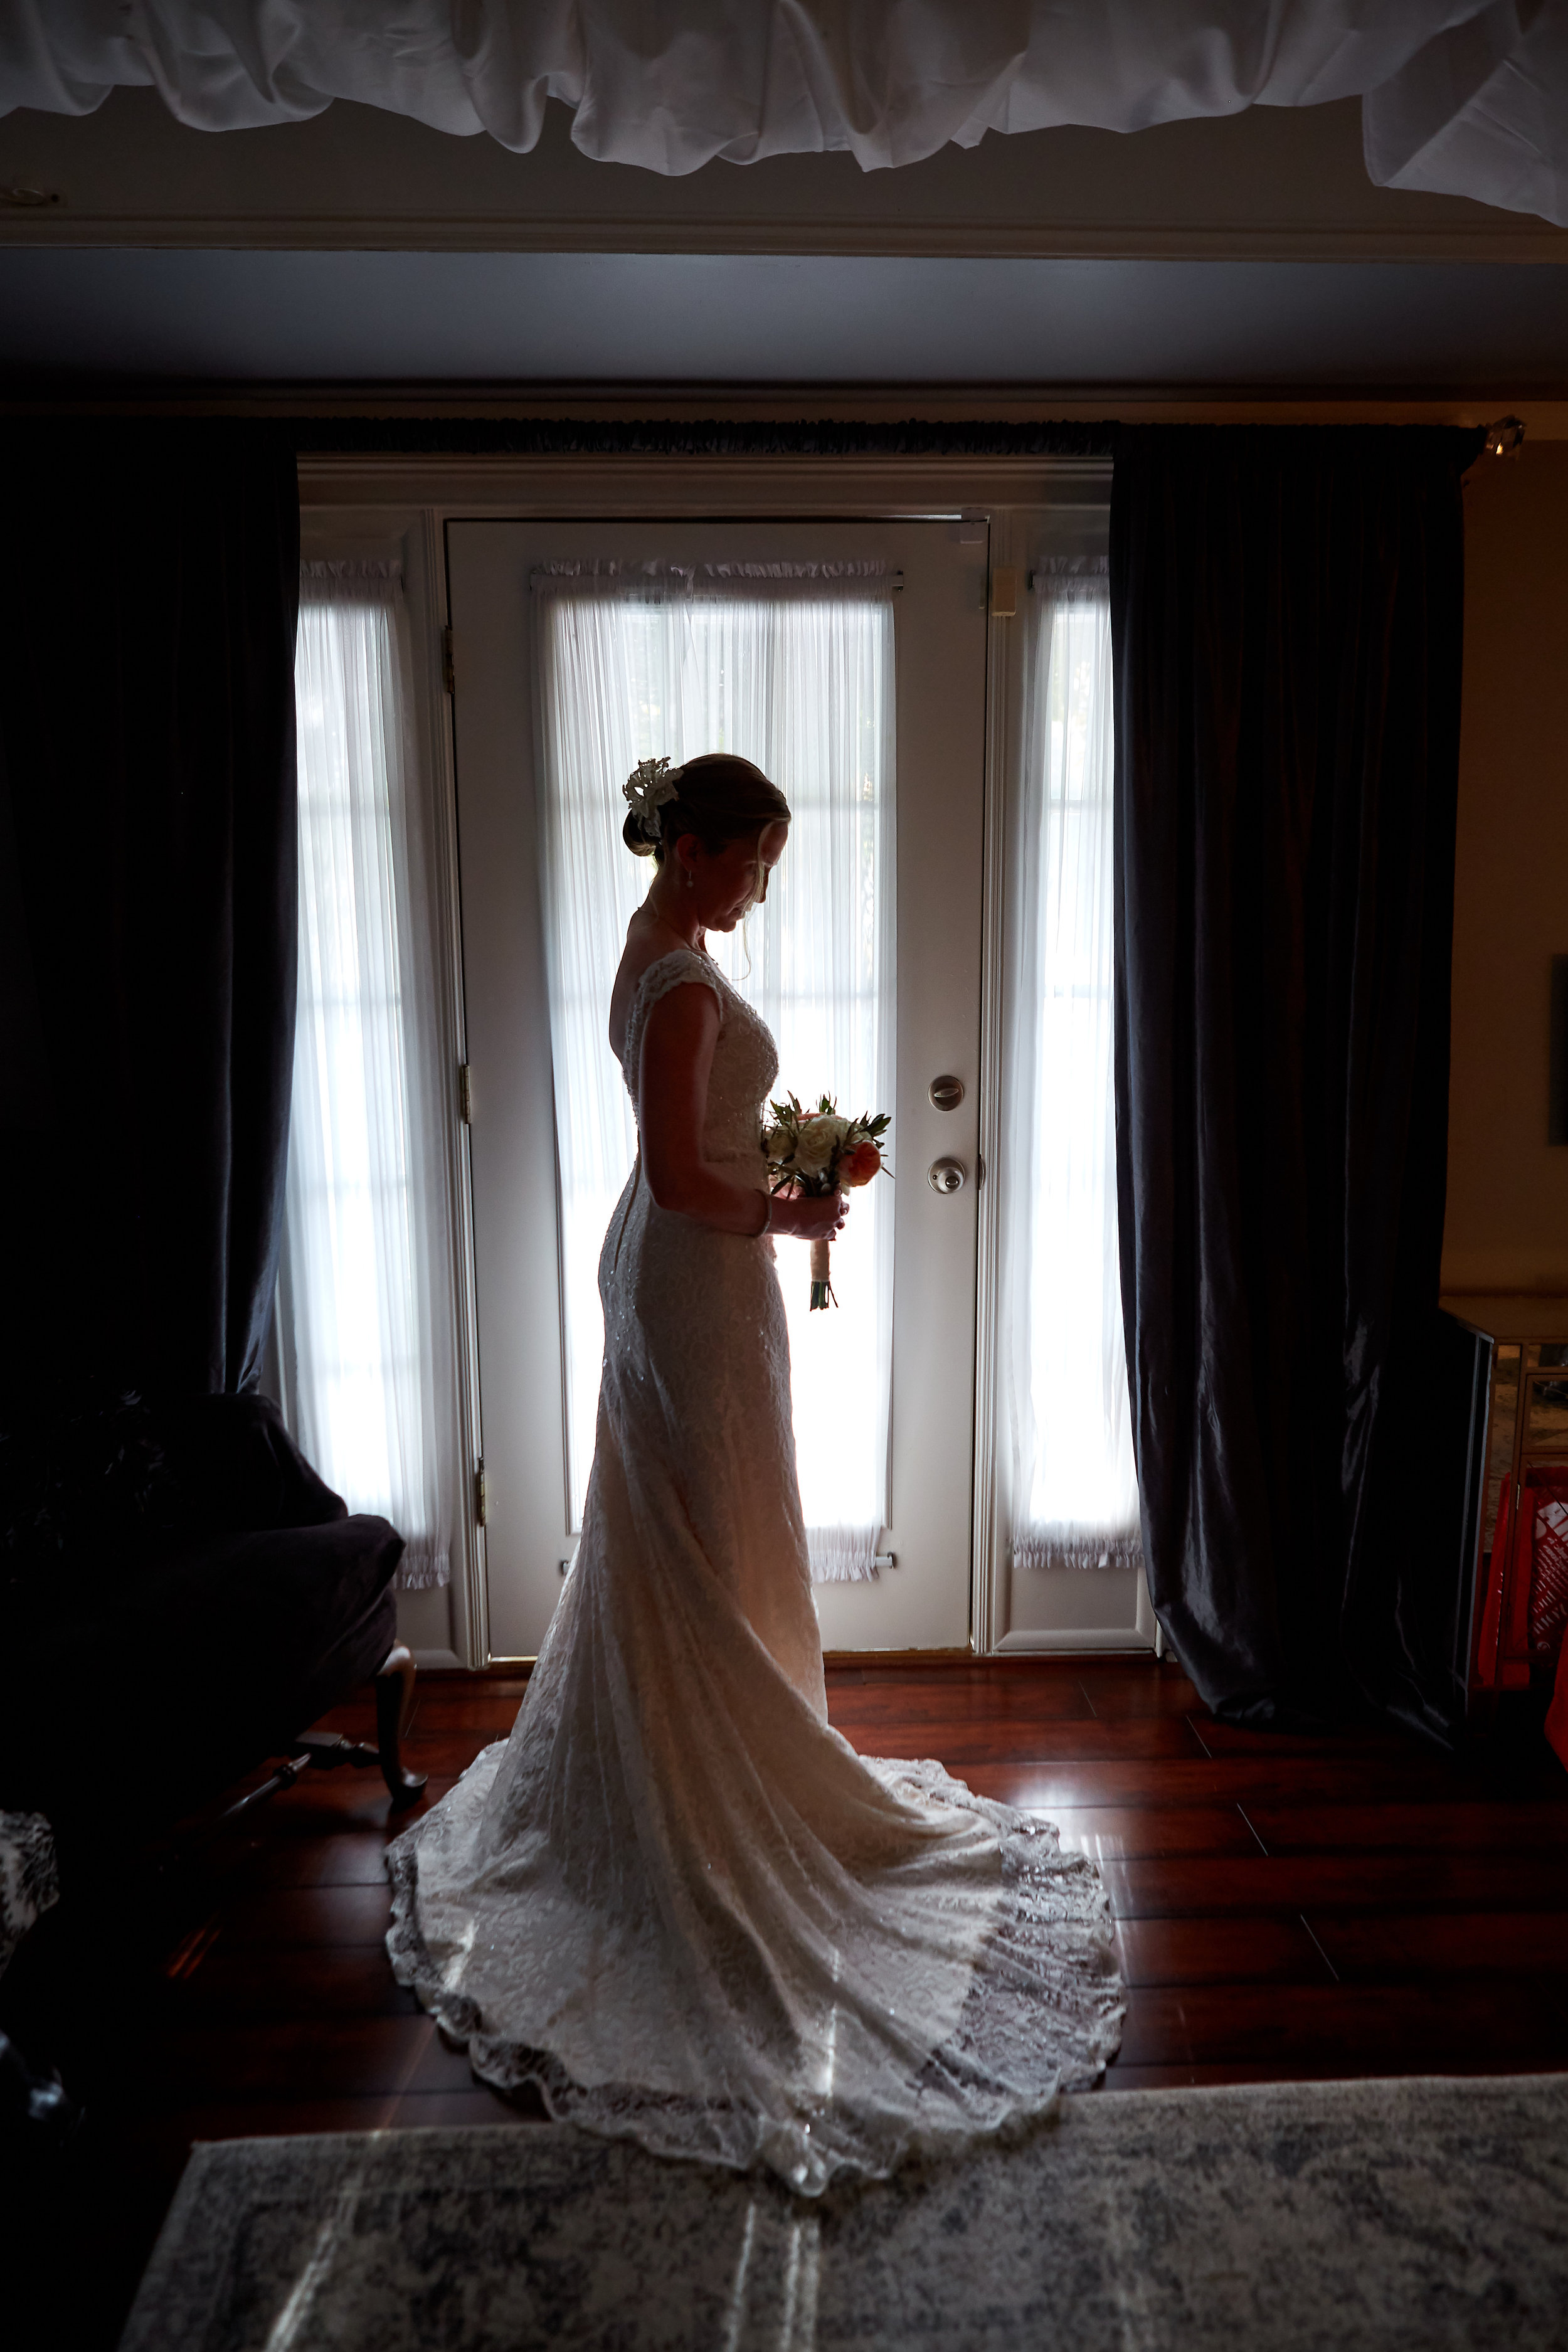 Silhouette portrait of a bride in her wedding dress, looking at her bouquet, at the Mackey House bridal suite, Savannah, Georgia.